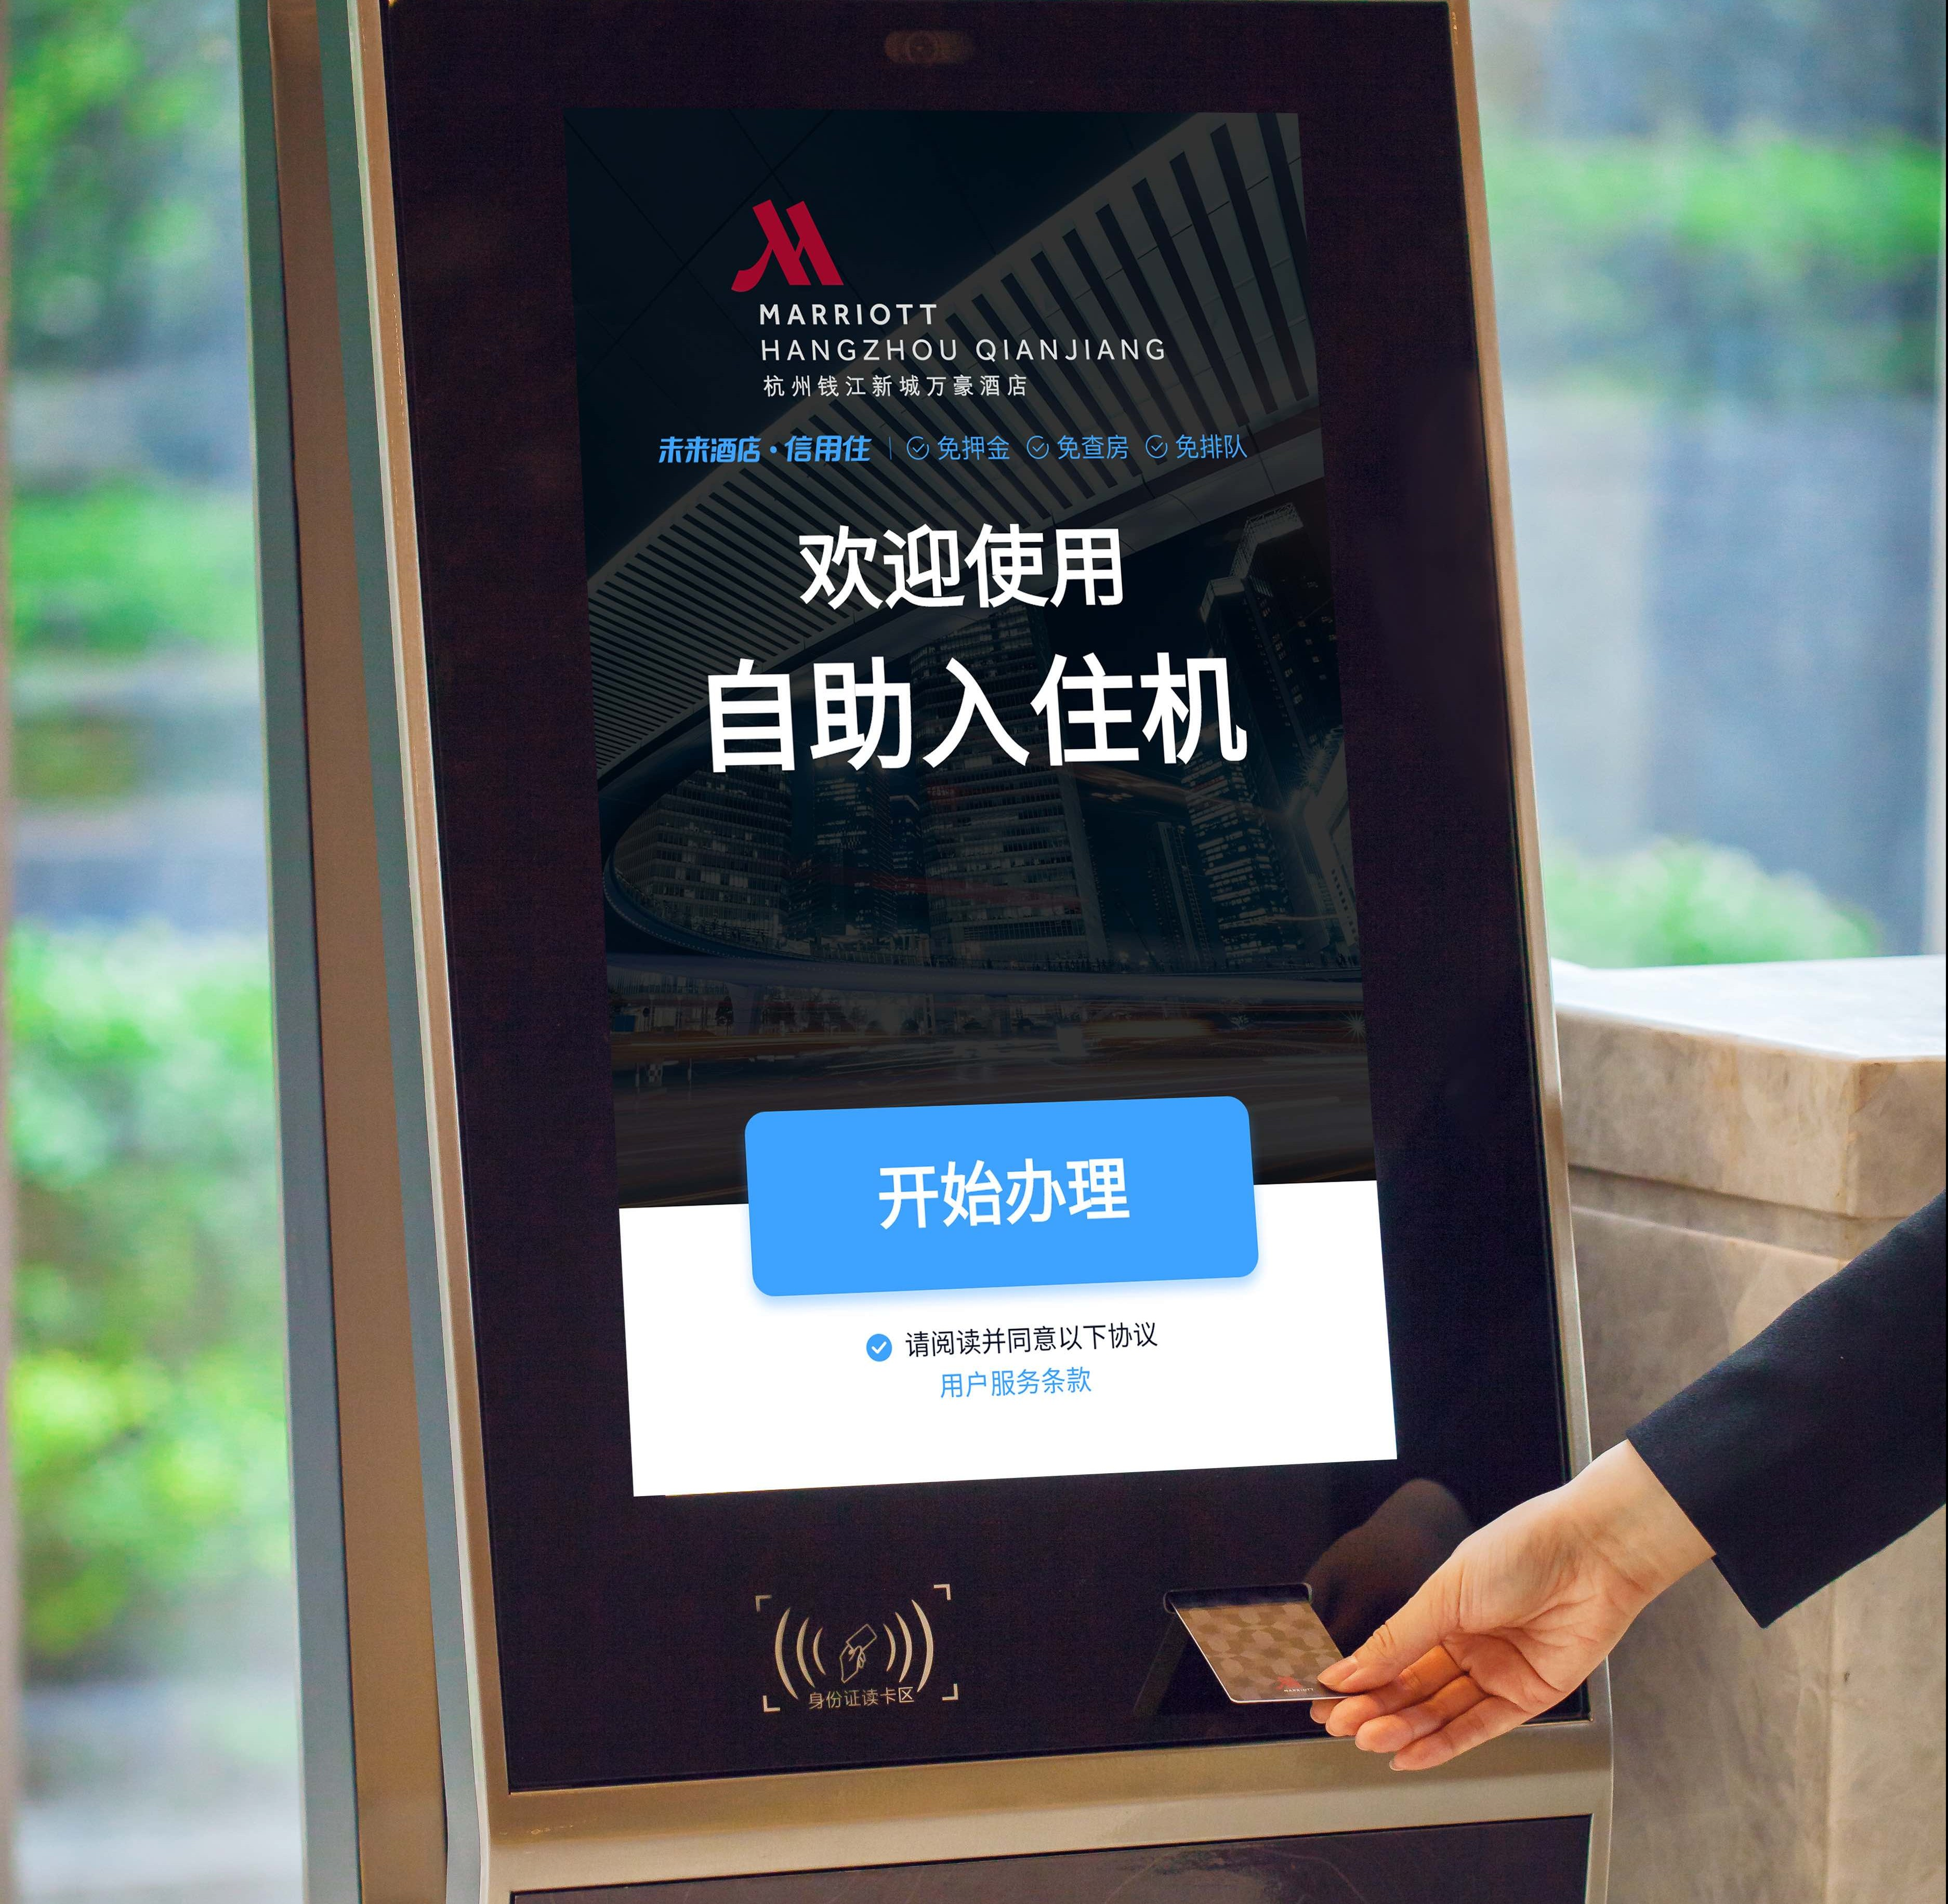 111Press-Image-Facial-Recognition-Check-in-Technology-Pilot-at-Two-Marriott-International-Properties-in-China-Will-Begin-from-July-2018-1